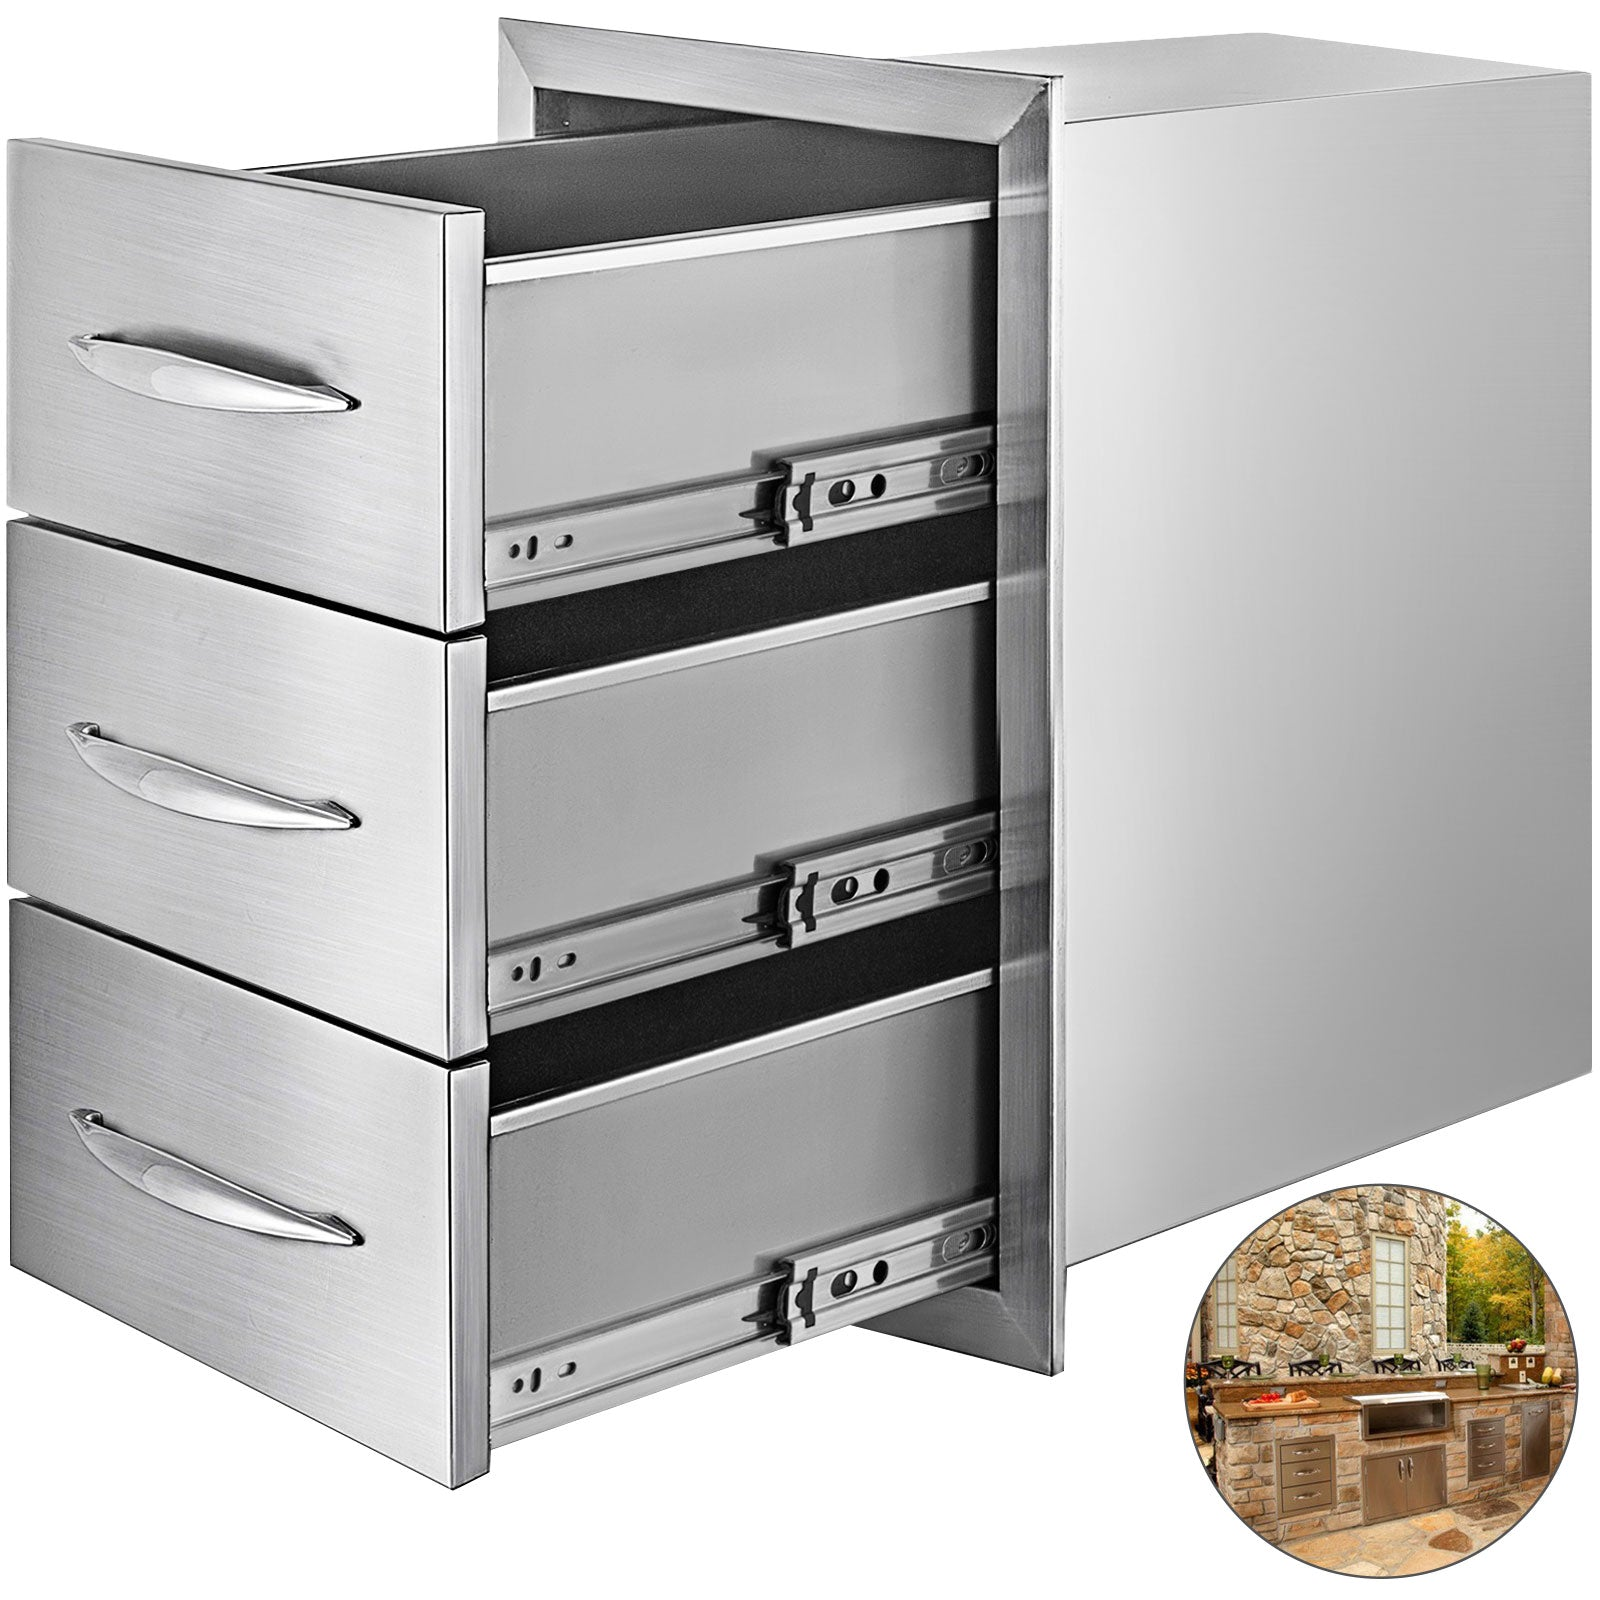 15.7 X 21.6 Bbq Drawer Outdoor Kitchen Drawers Triple Flush Convenient Storage